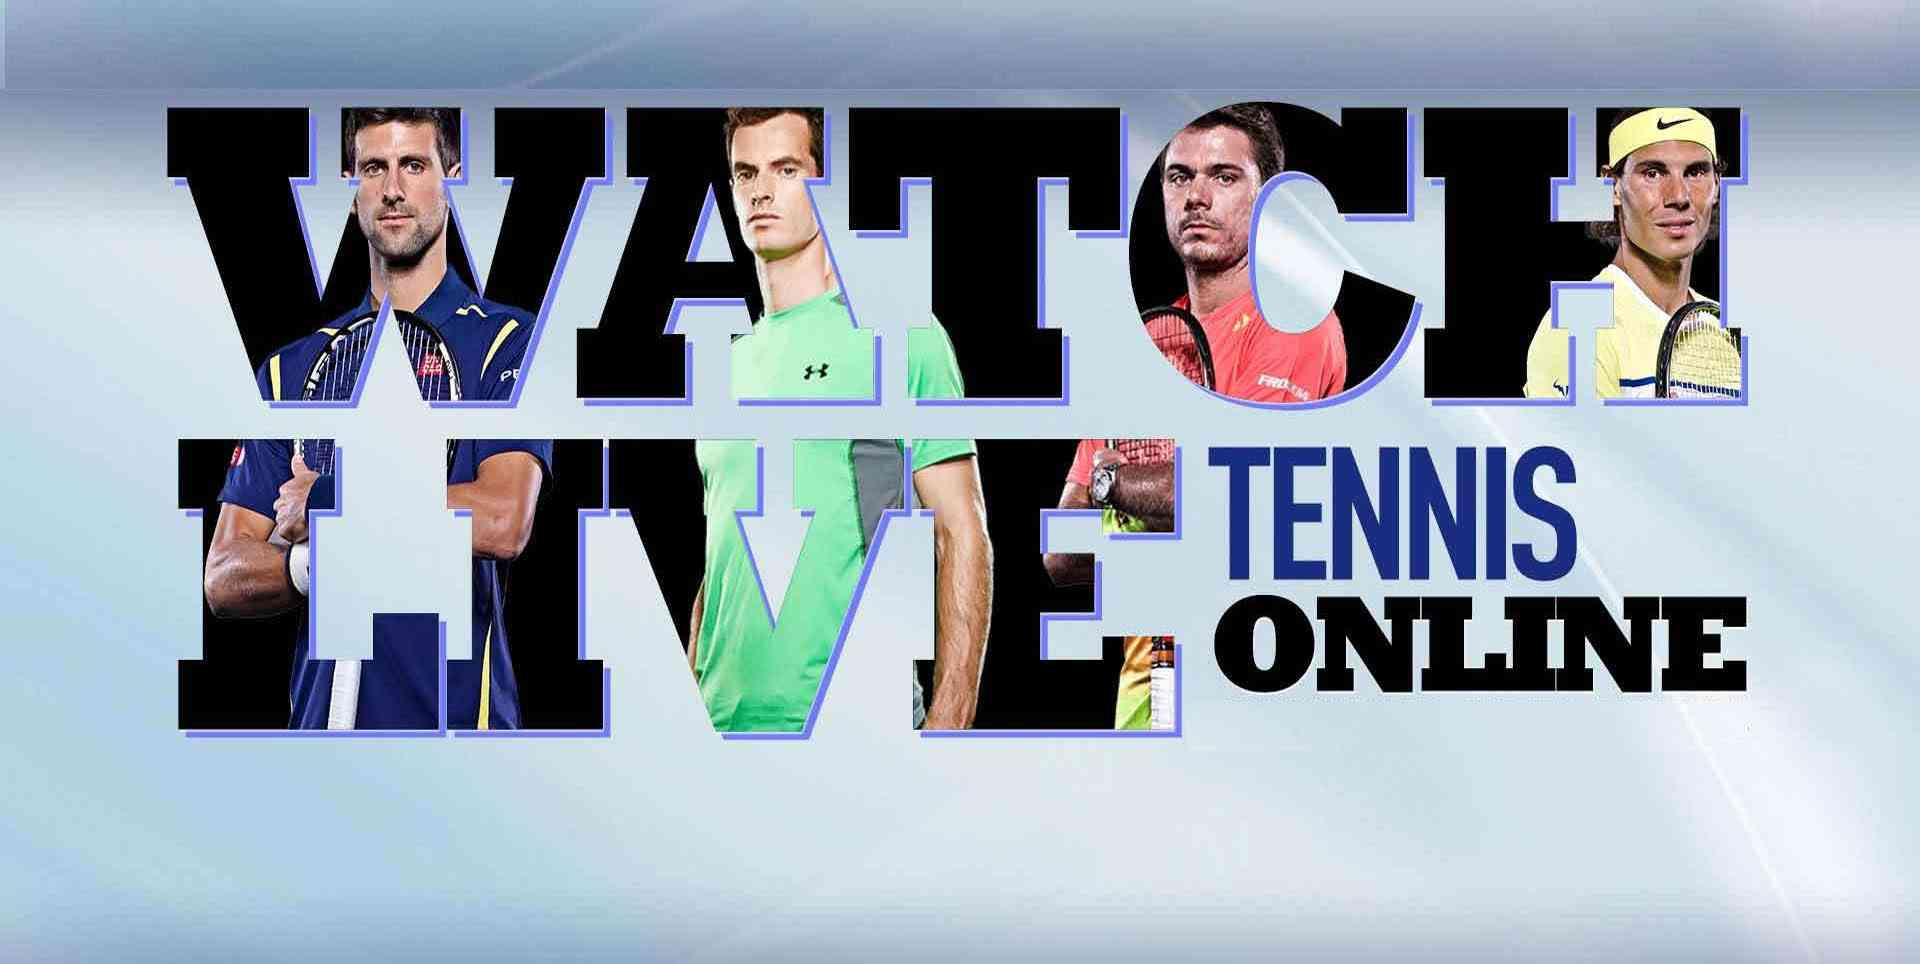 Watch 2nd Round E. Gulbis vs S. Stakhovsky Online